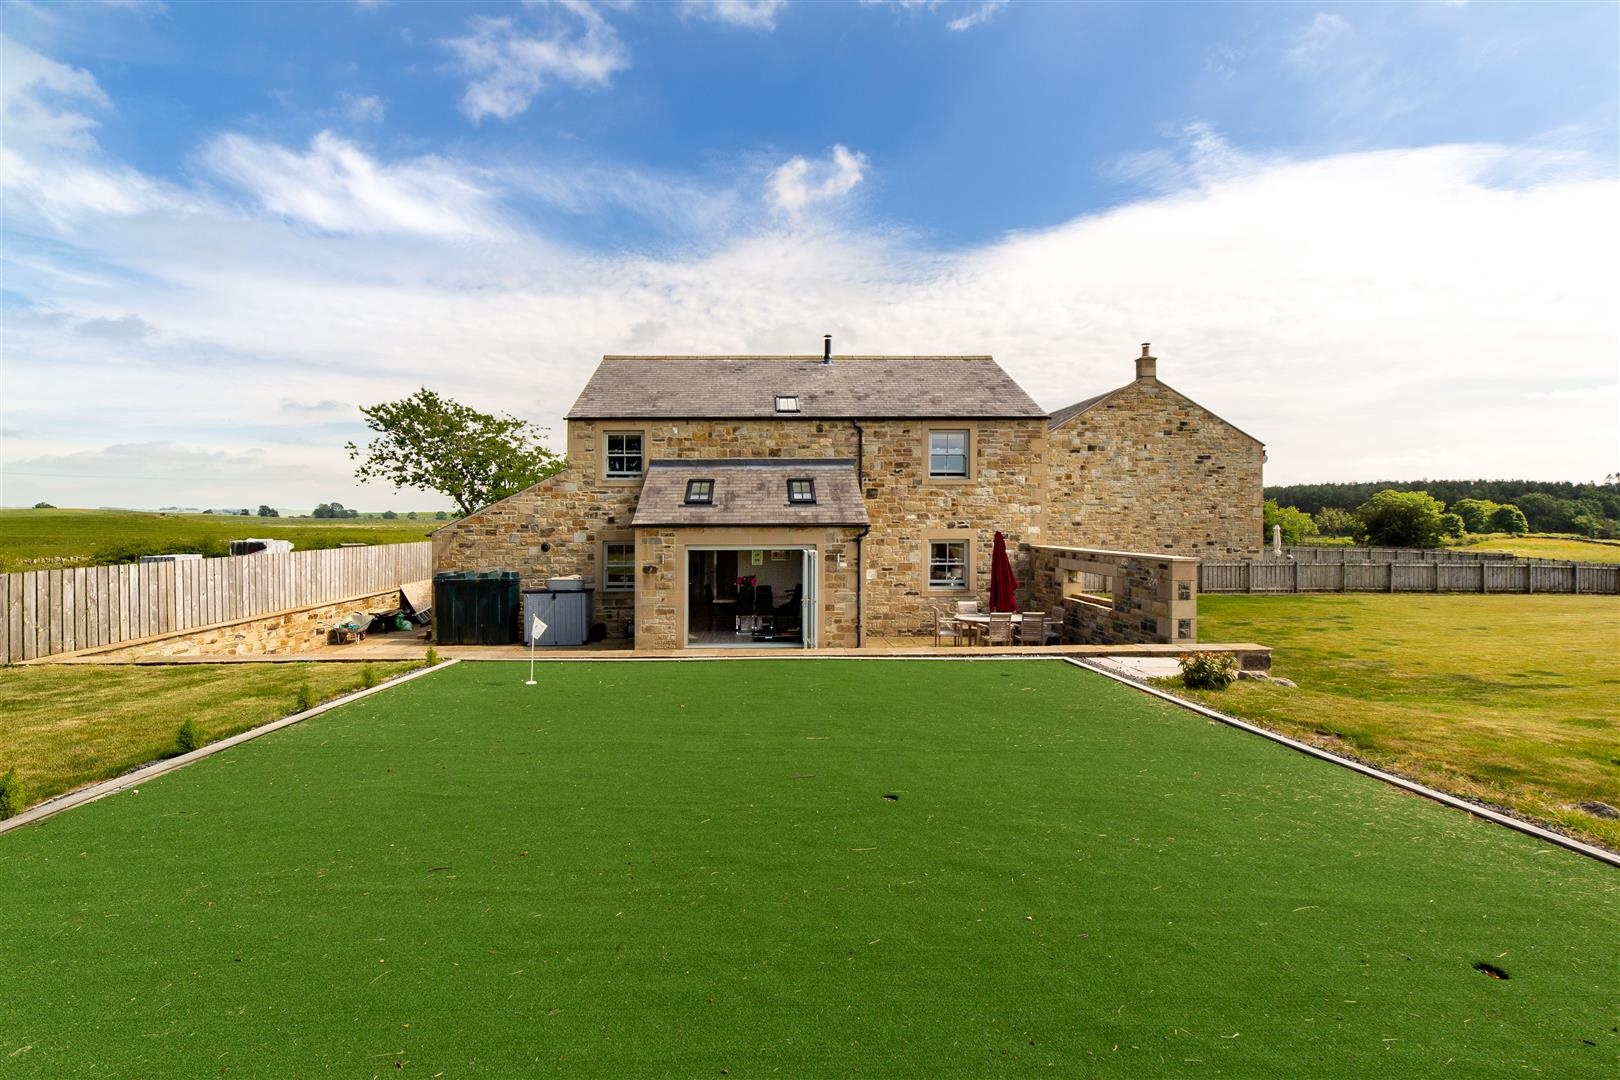 4 bed detached house for sale, Hexham 20